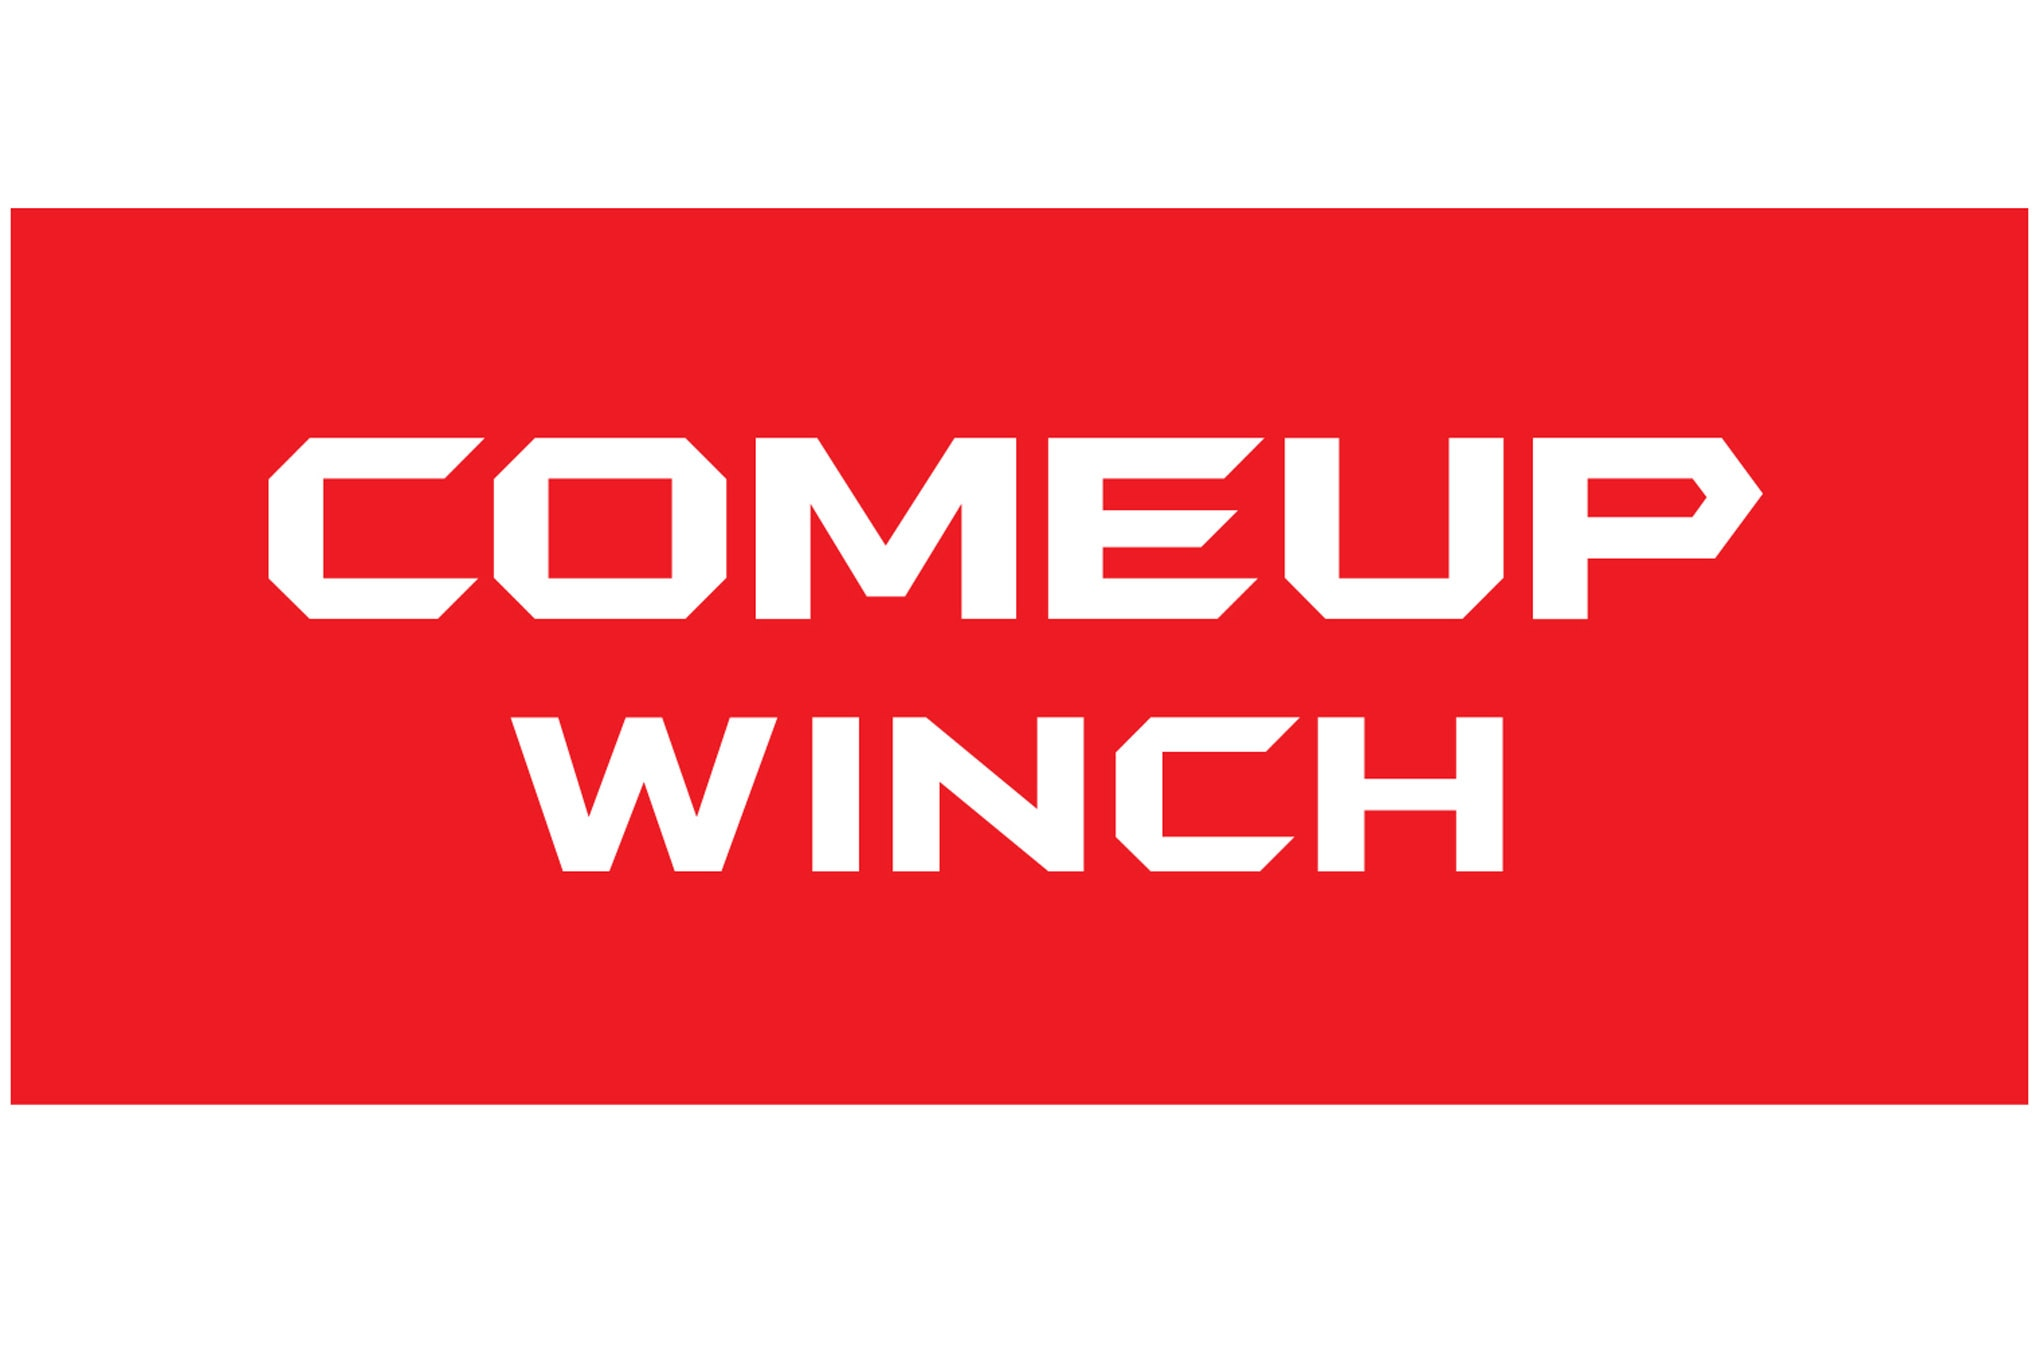 Wtw Comeup Winch Logo Photo 243906380